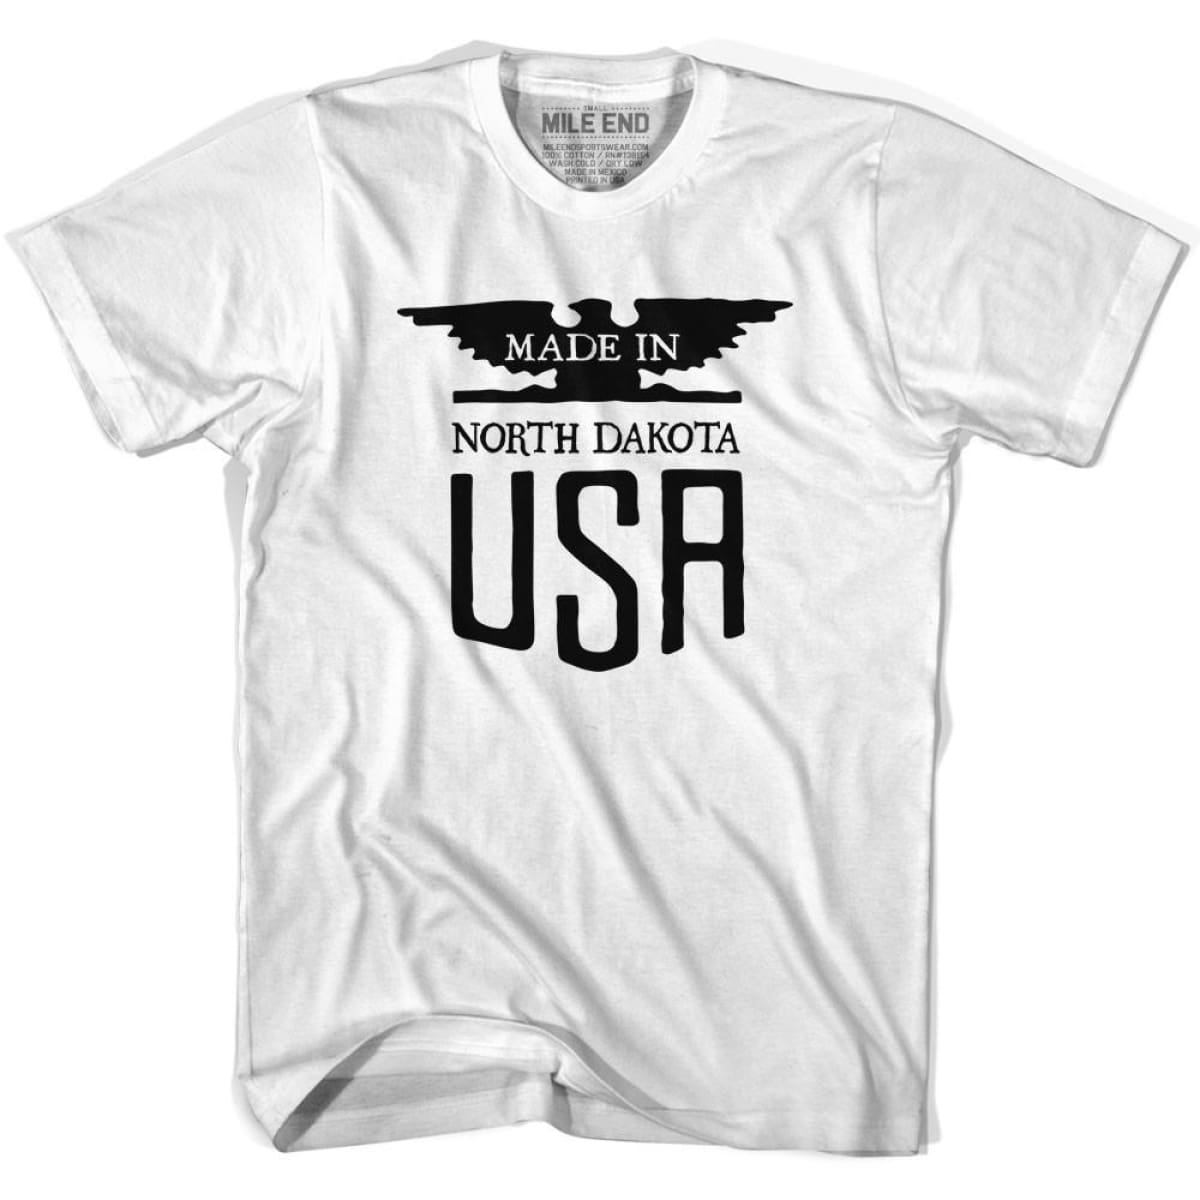 North Dakota Vintage Eagle T-shirt - White / Youth X-Small - Made in Eagle